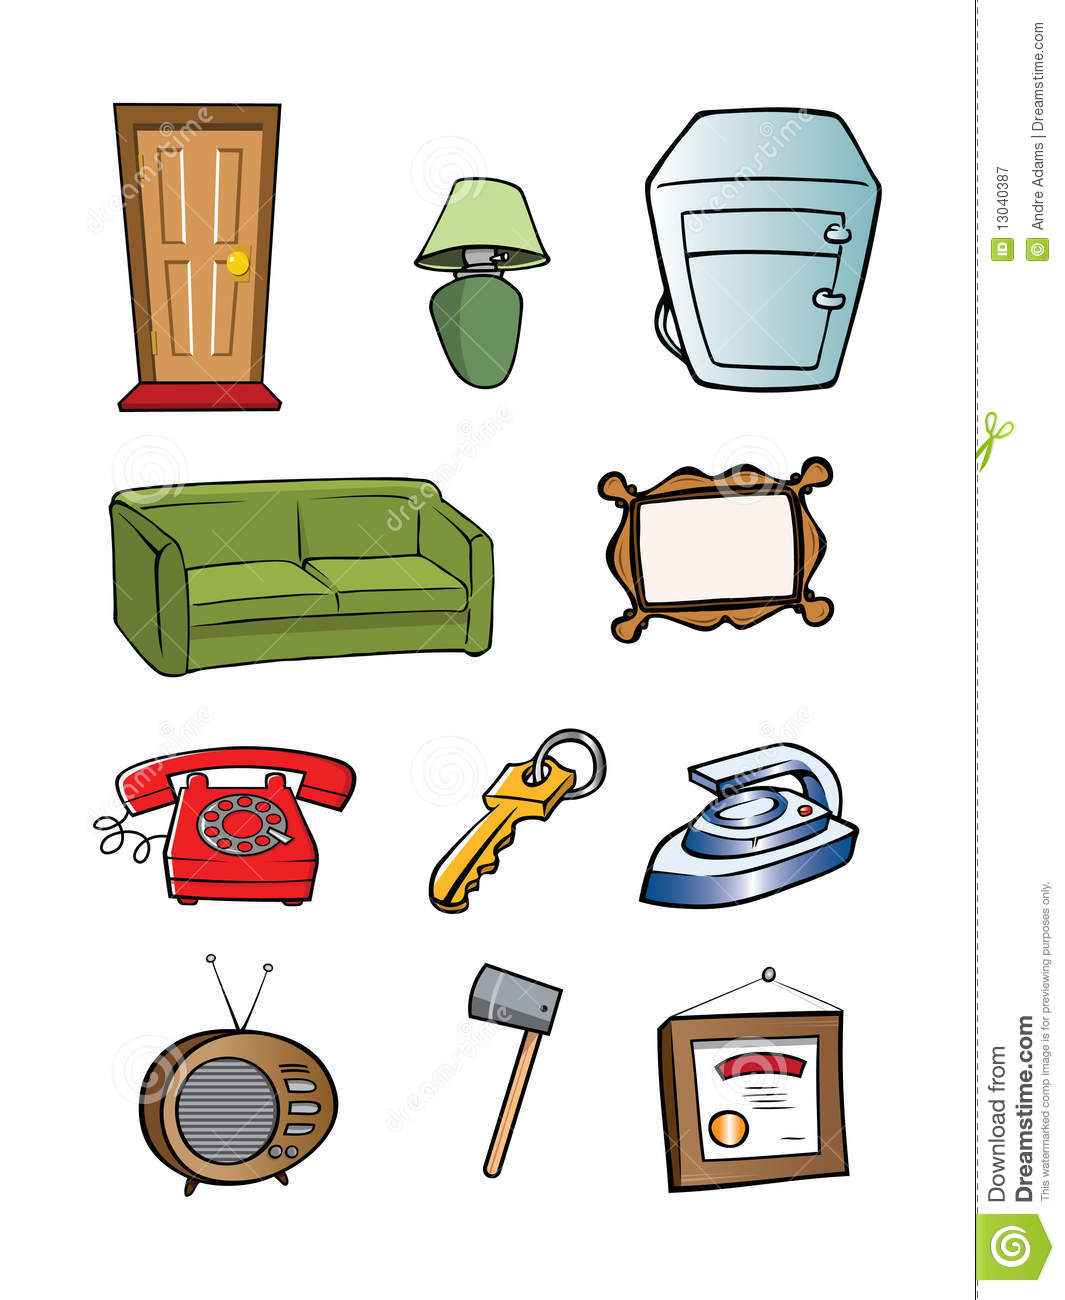 Random Household Objects Collection Royalty Free Stock